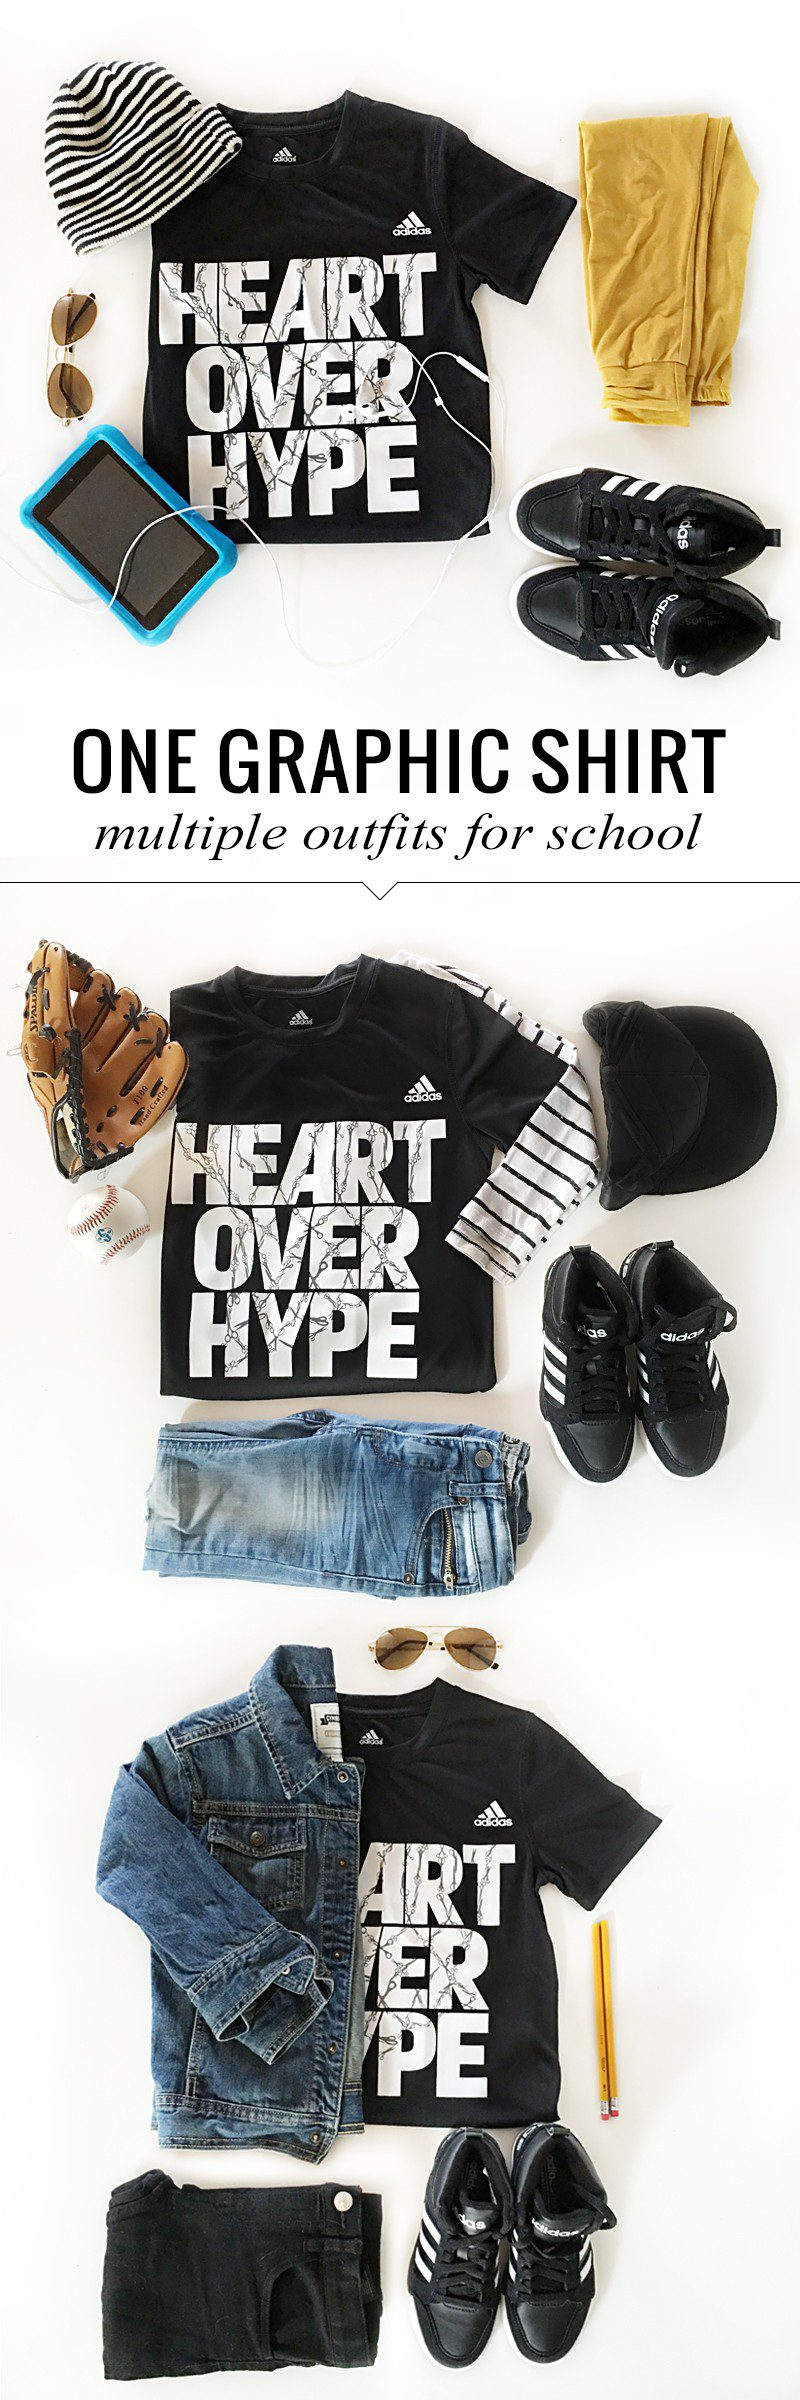 Back to School Shopping- 5 Tips to a Killer Wardrobe and multiple school looks with a single graphic tee for boys